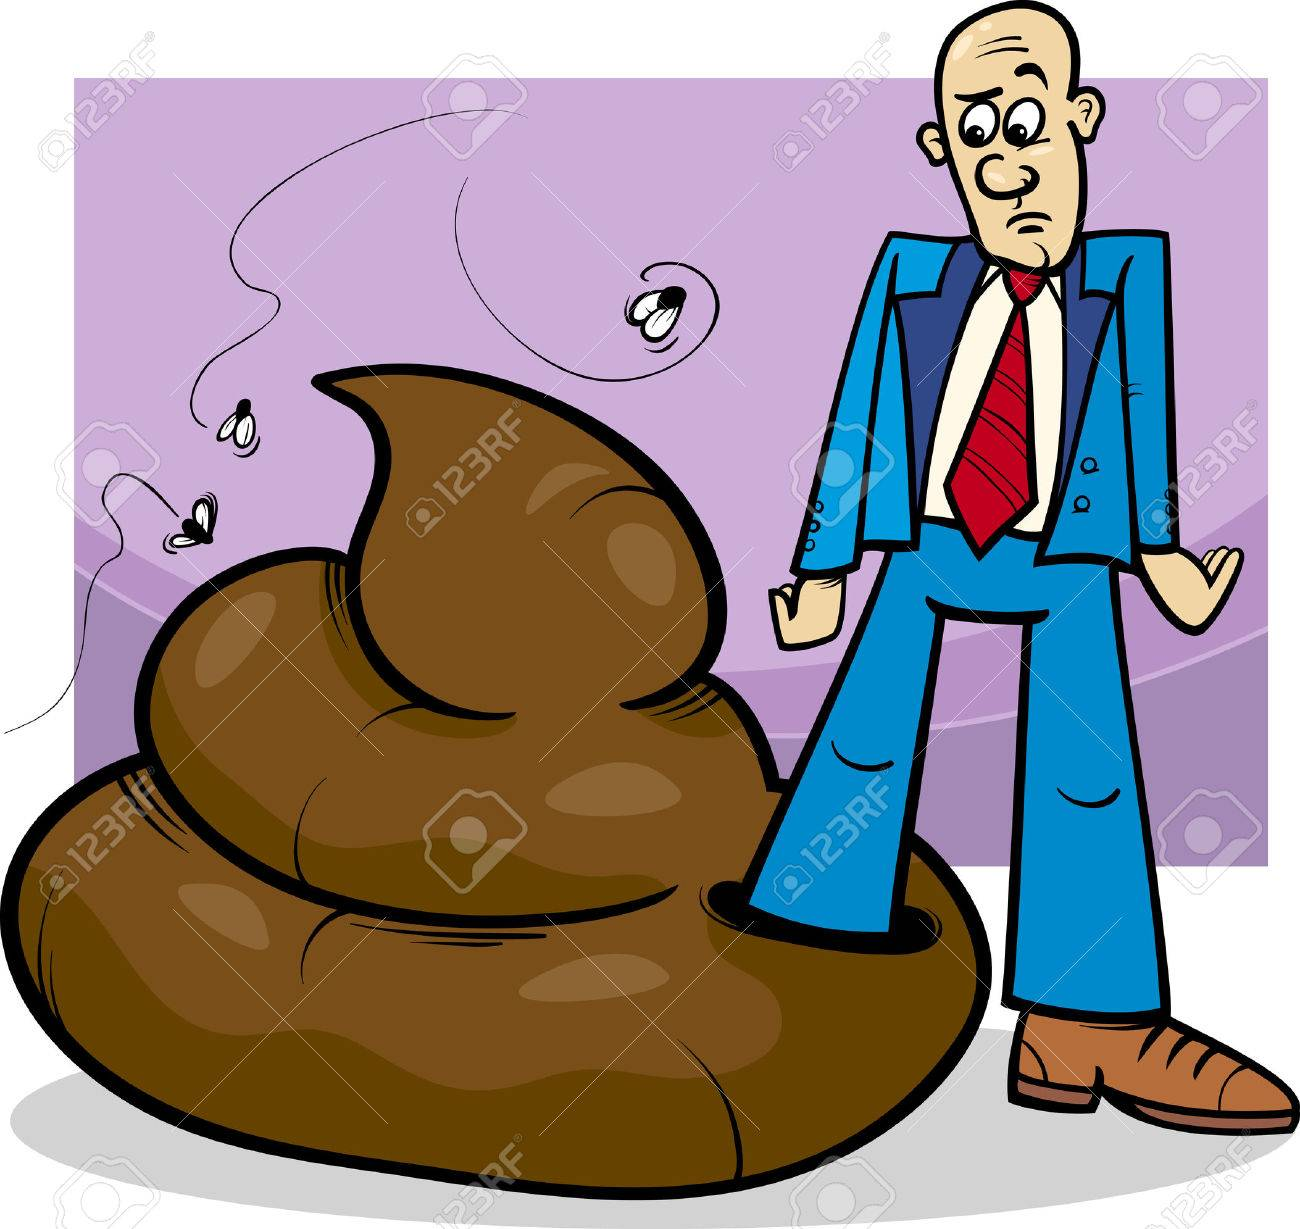 Image result for image of person laying in a pile of shit